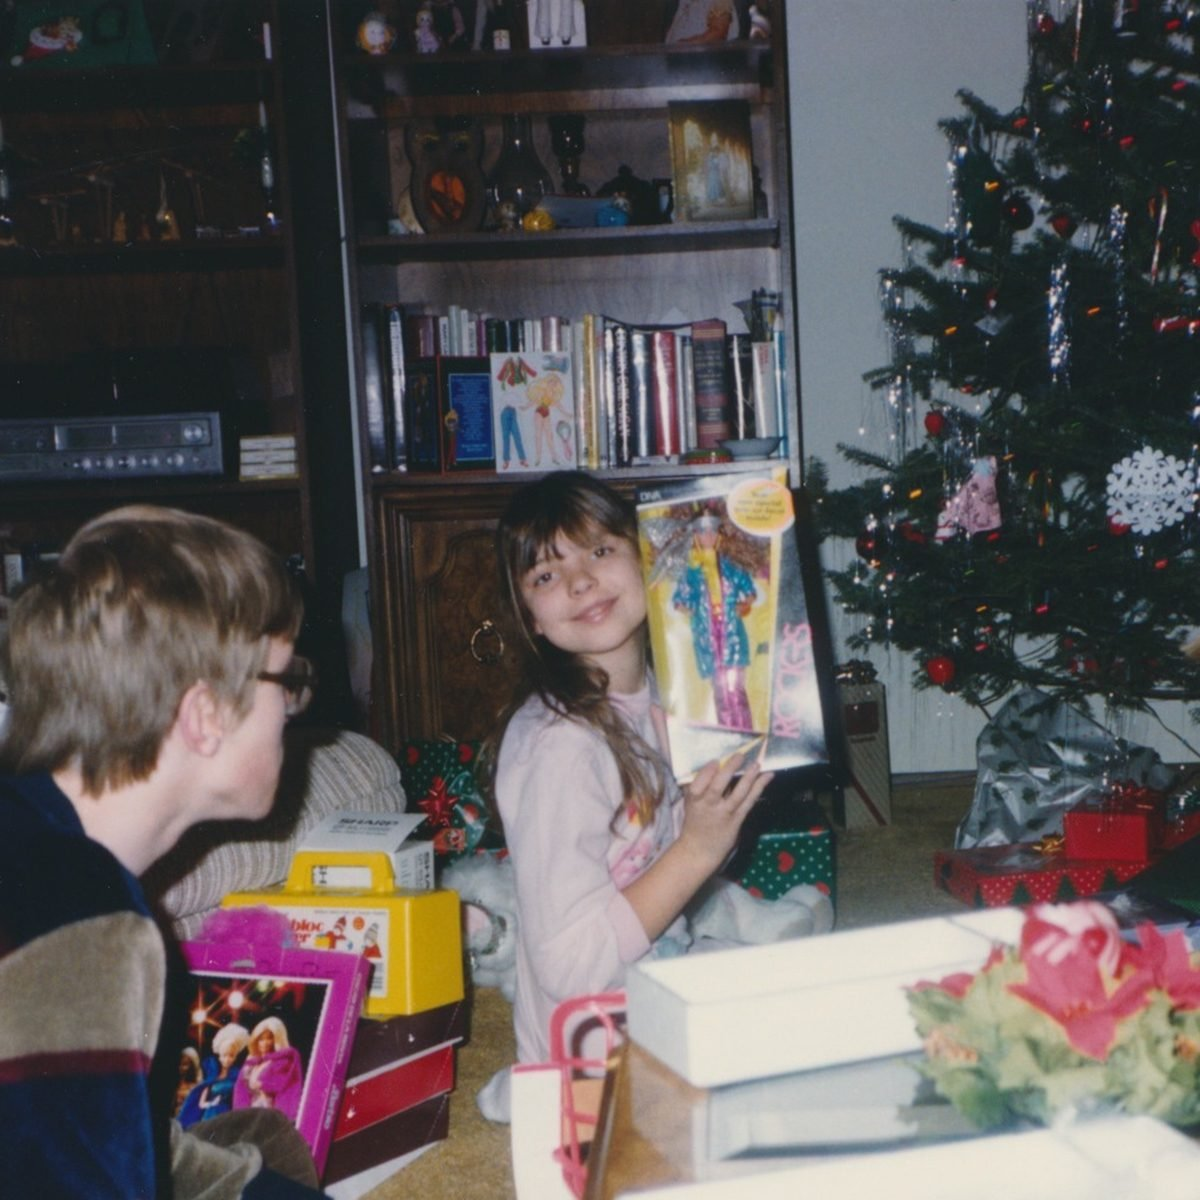 Young girl excitedly holds up Barbie she got for Christmas